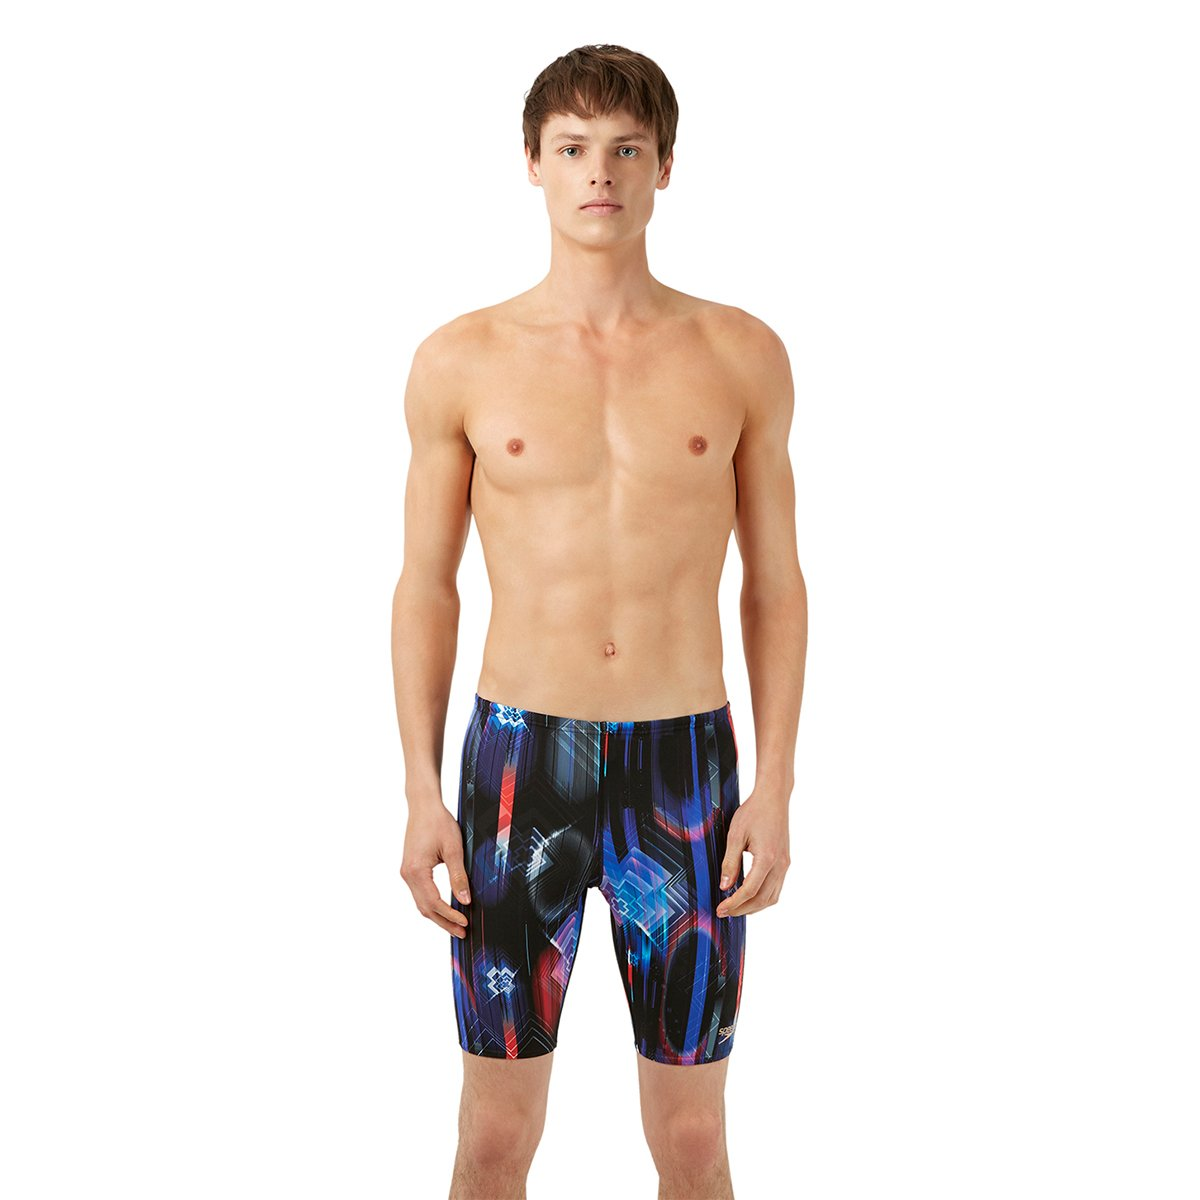 цены на Speedo Mens Endurance + Allover Digital Jammer Print 1 - Black / Gravity / Turquoise